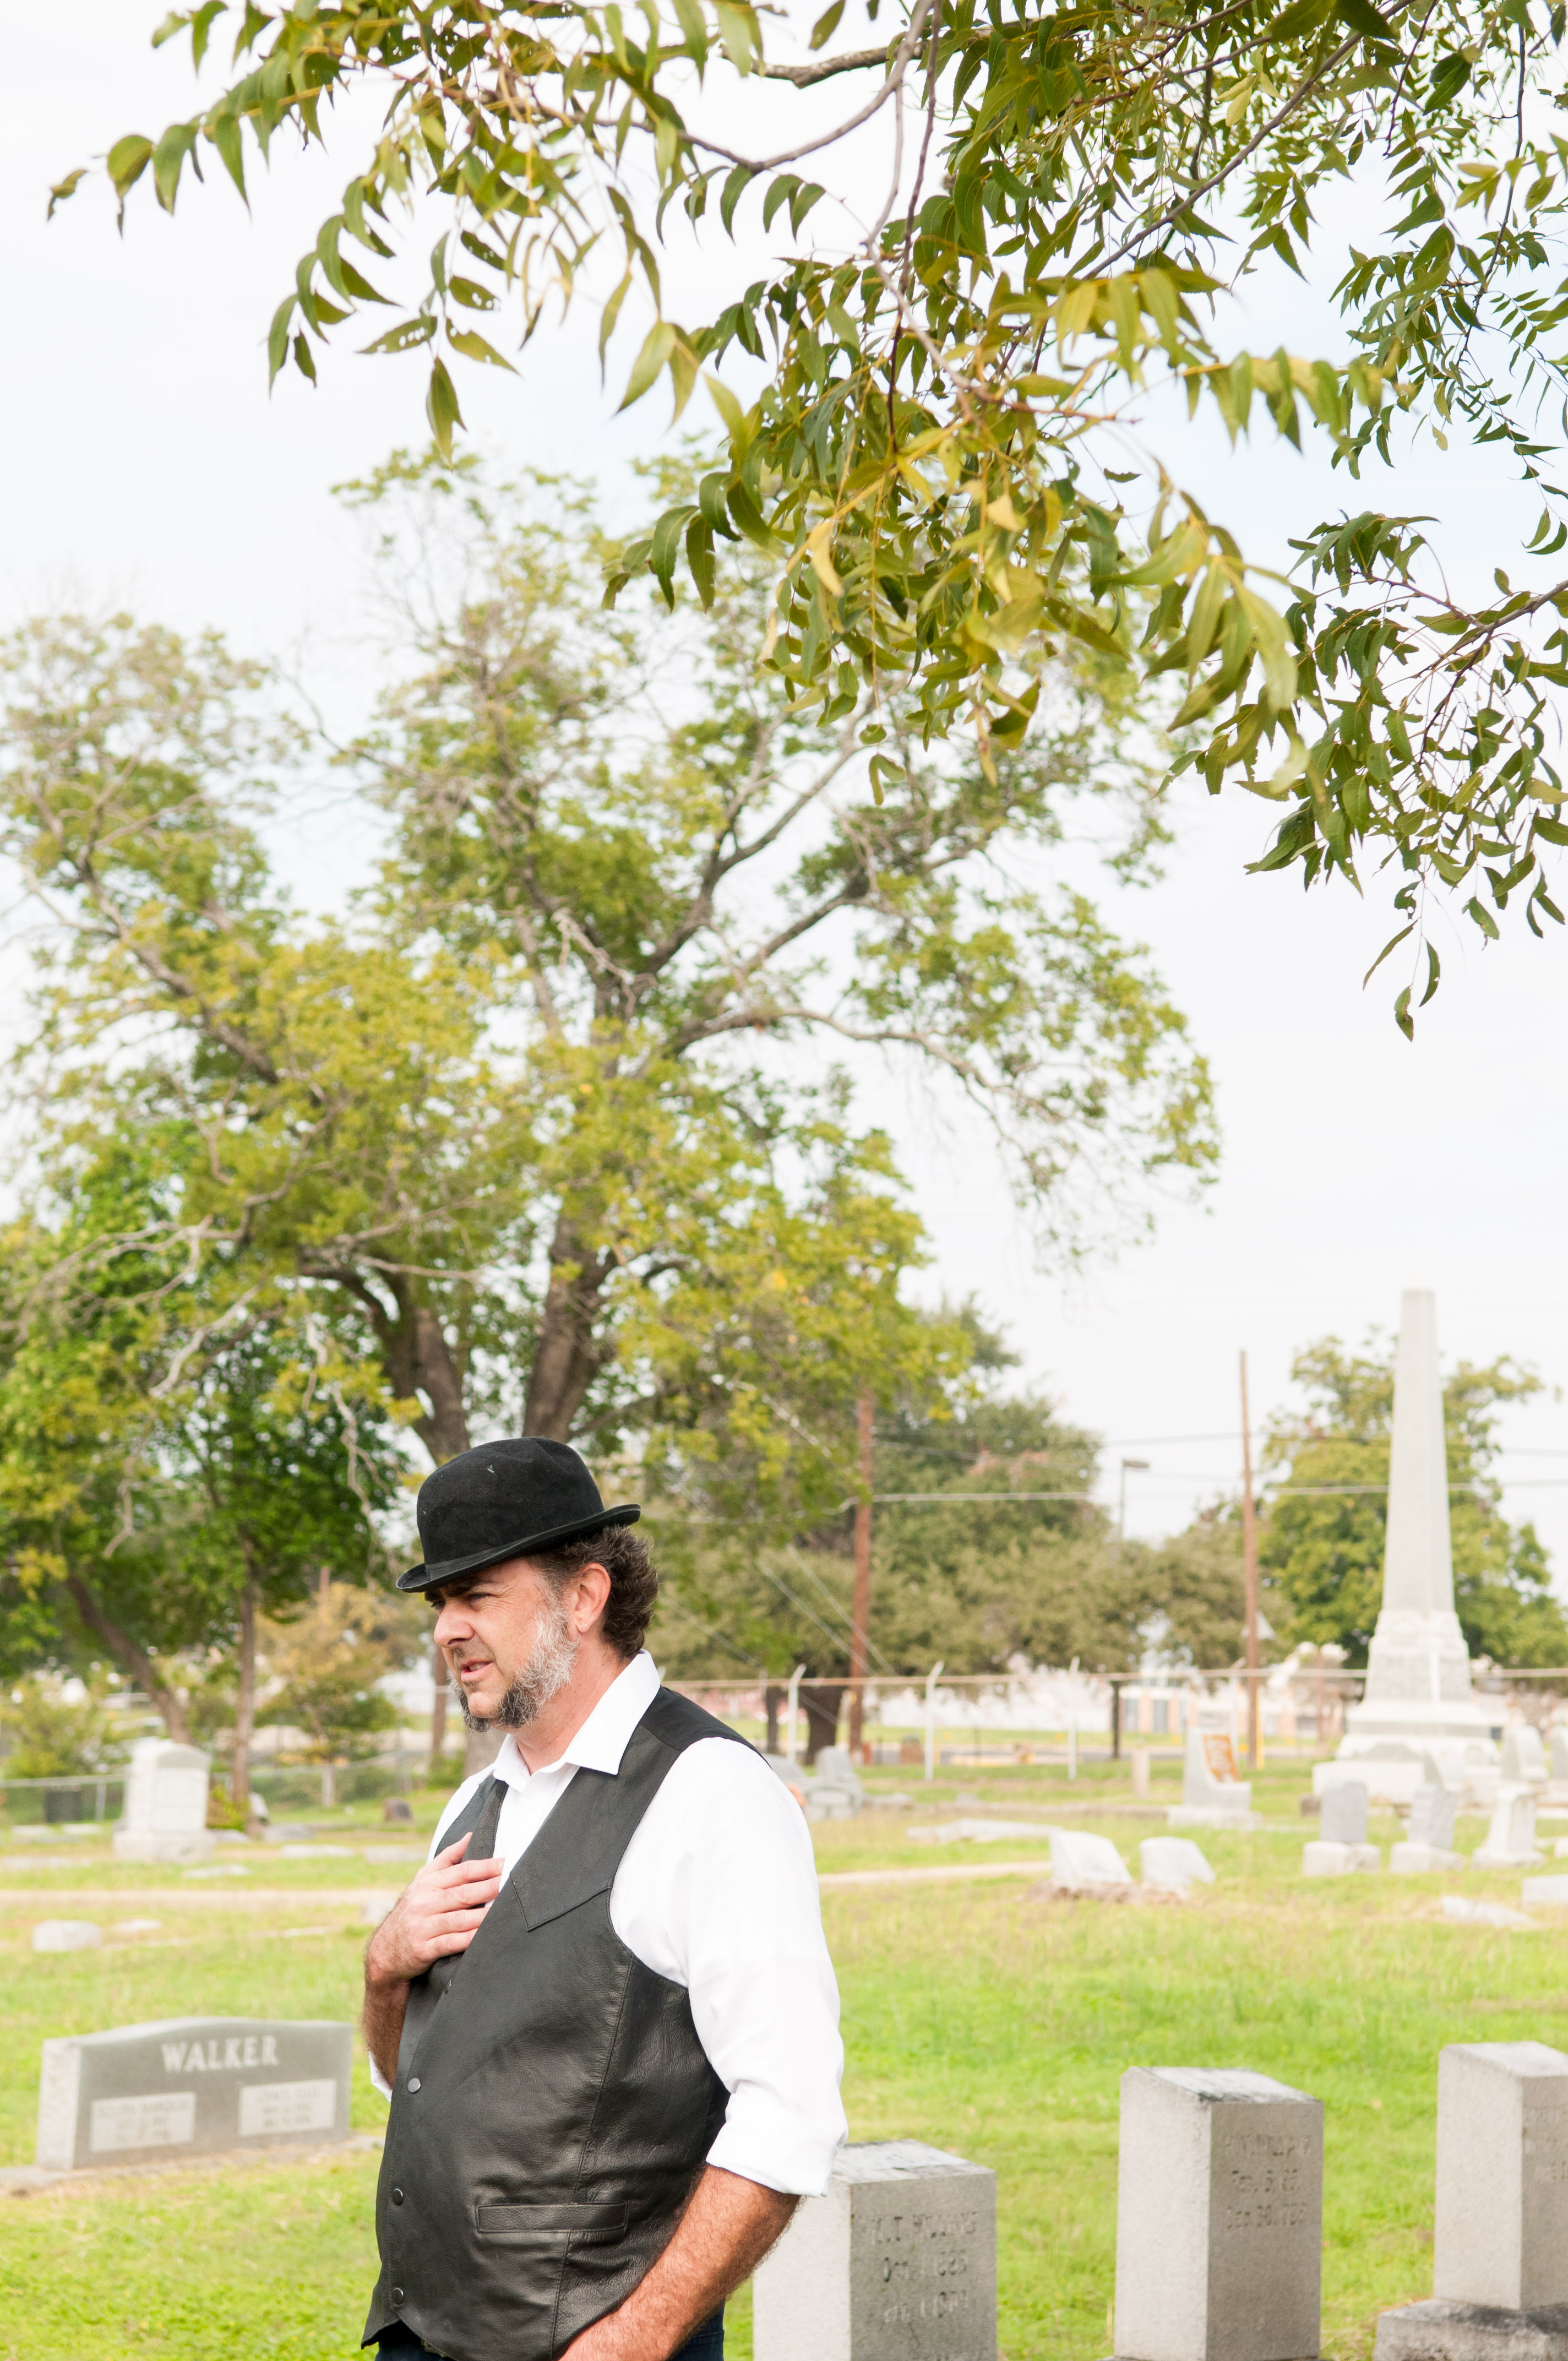 A storyteller shares his rehearsed story acting as the person buried at that grave. Photo by Skylar Isdale